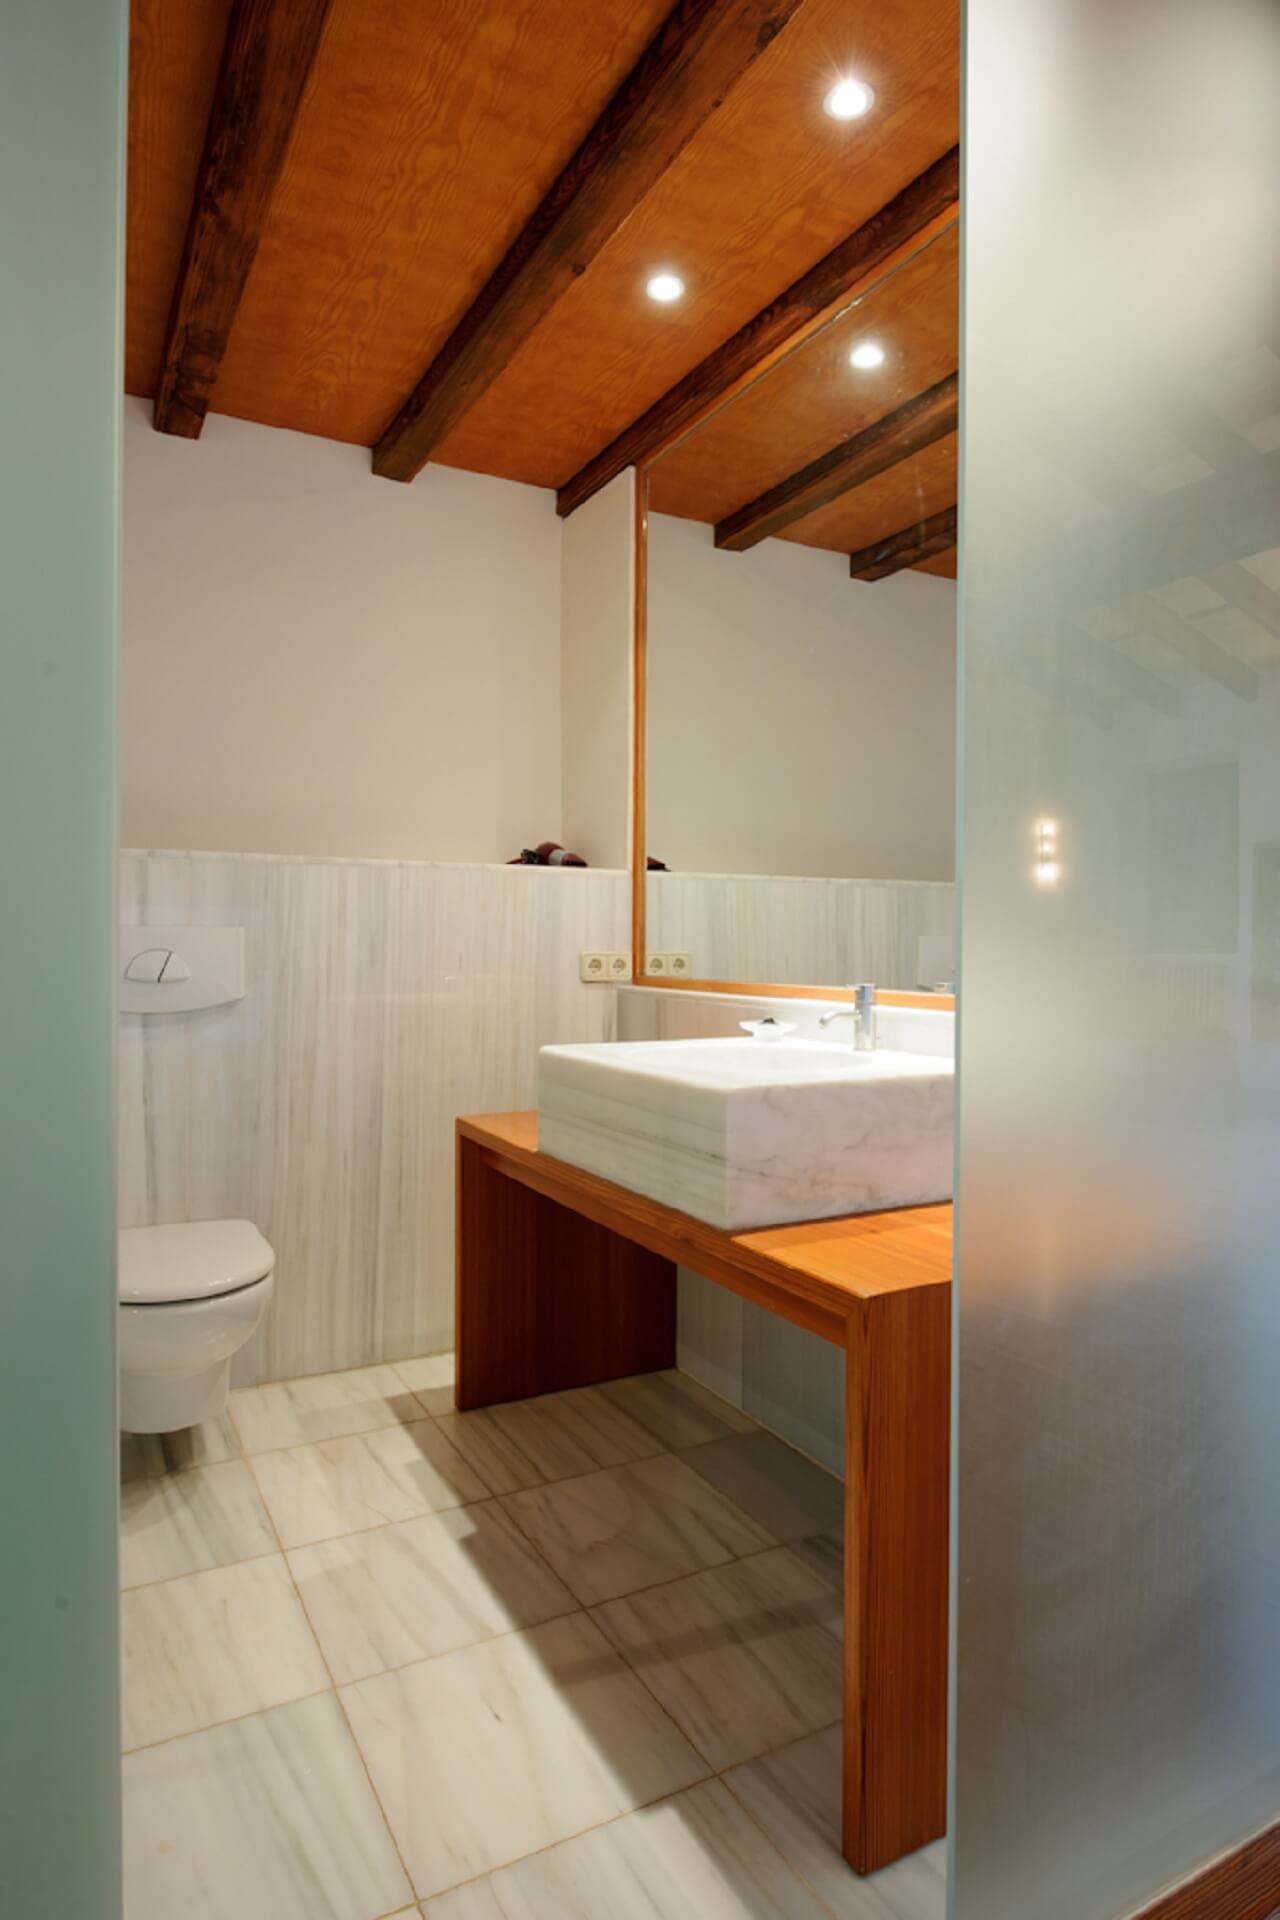 Finca Son Rito - Bathroom main house, first floor left